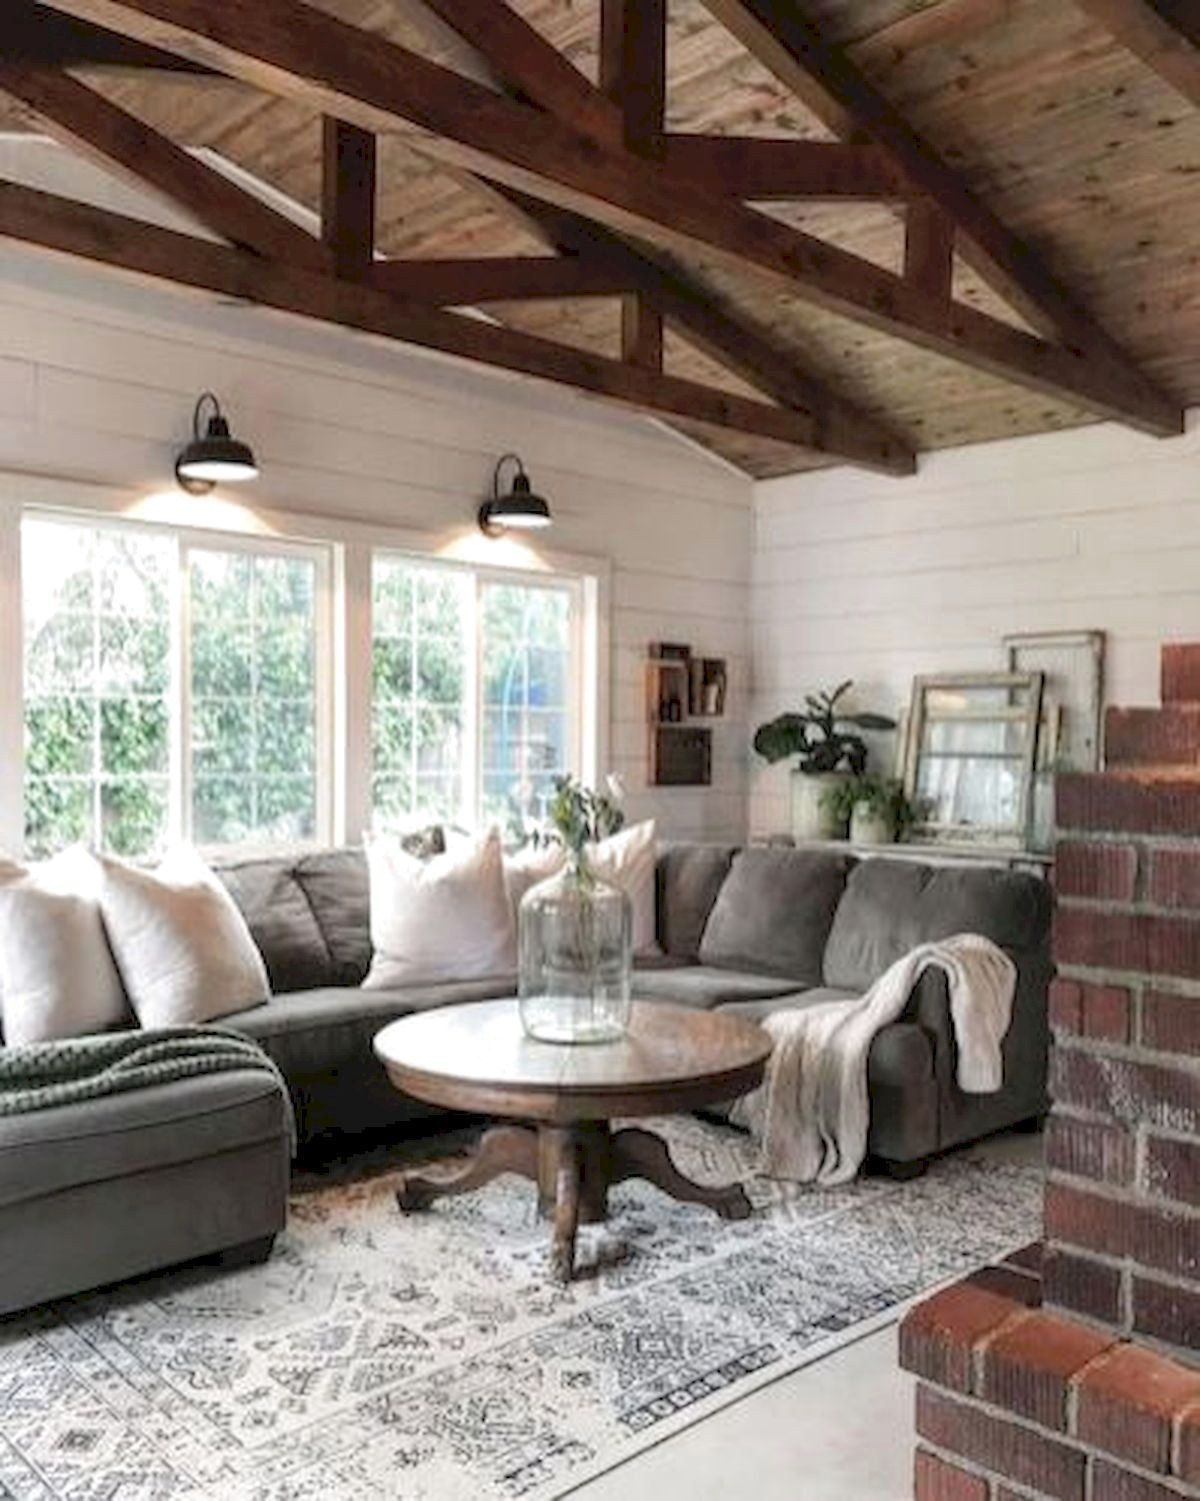 80 Best Farmhouse Living Room Decor Ideas #FarmhouseLivingRoomDecorIdeas #modernfarmhouselivingroom